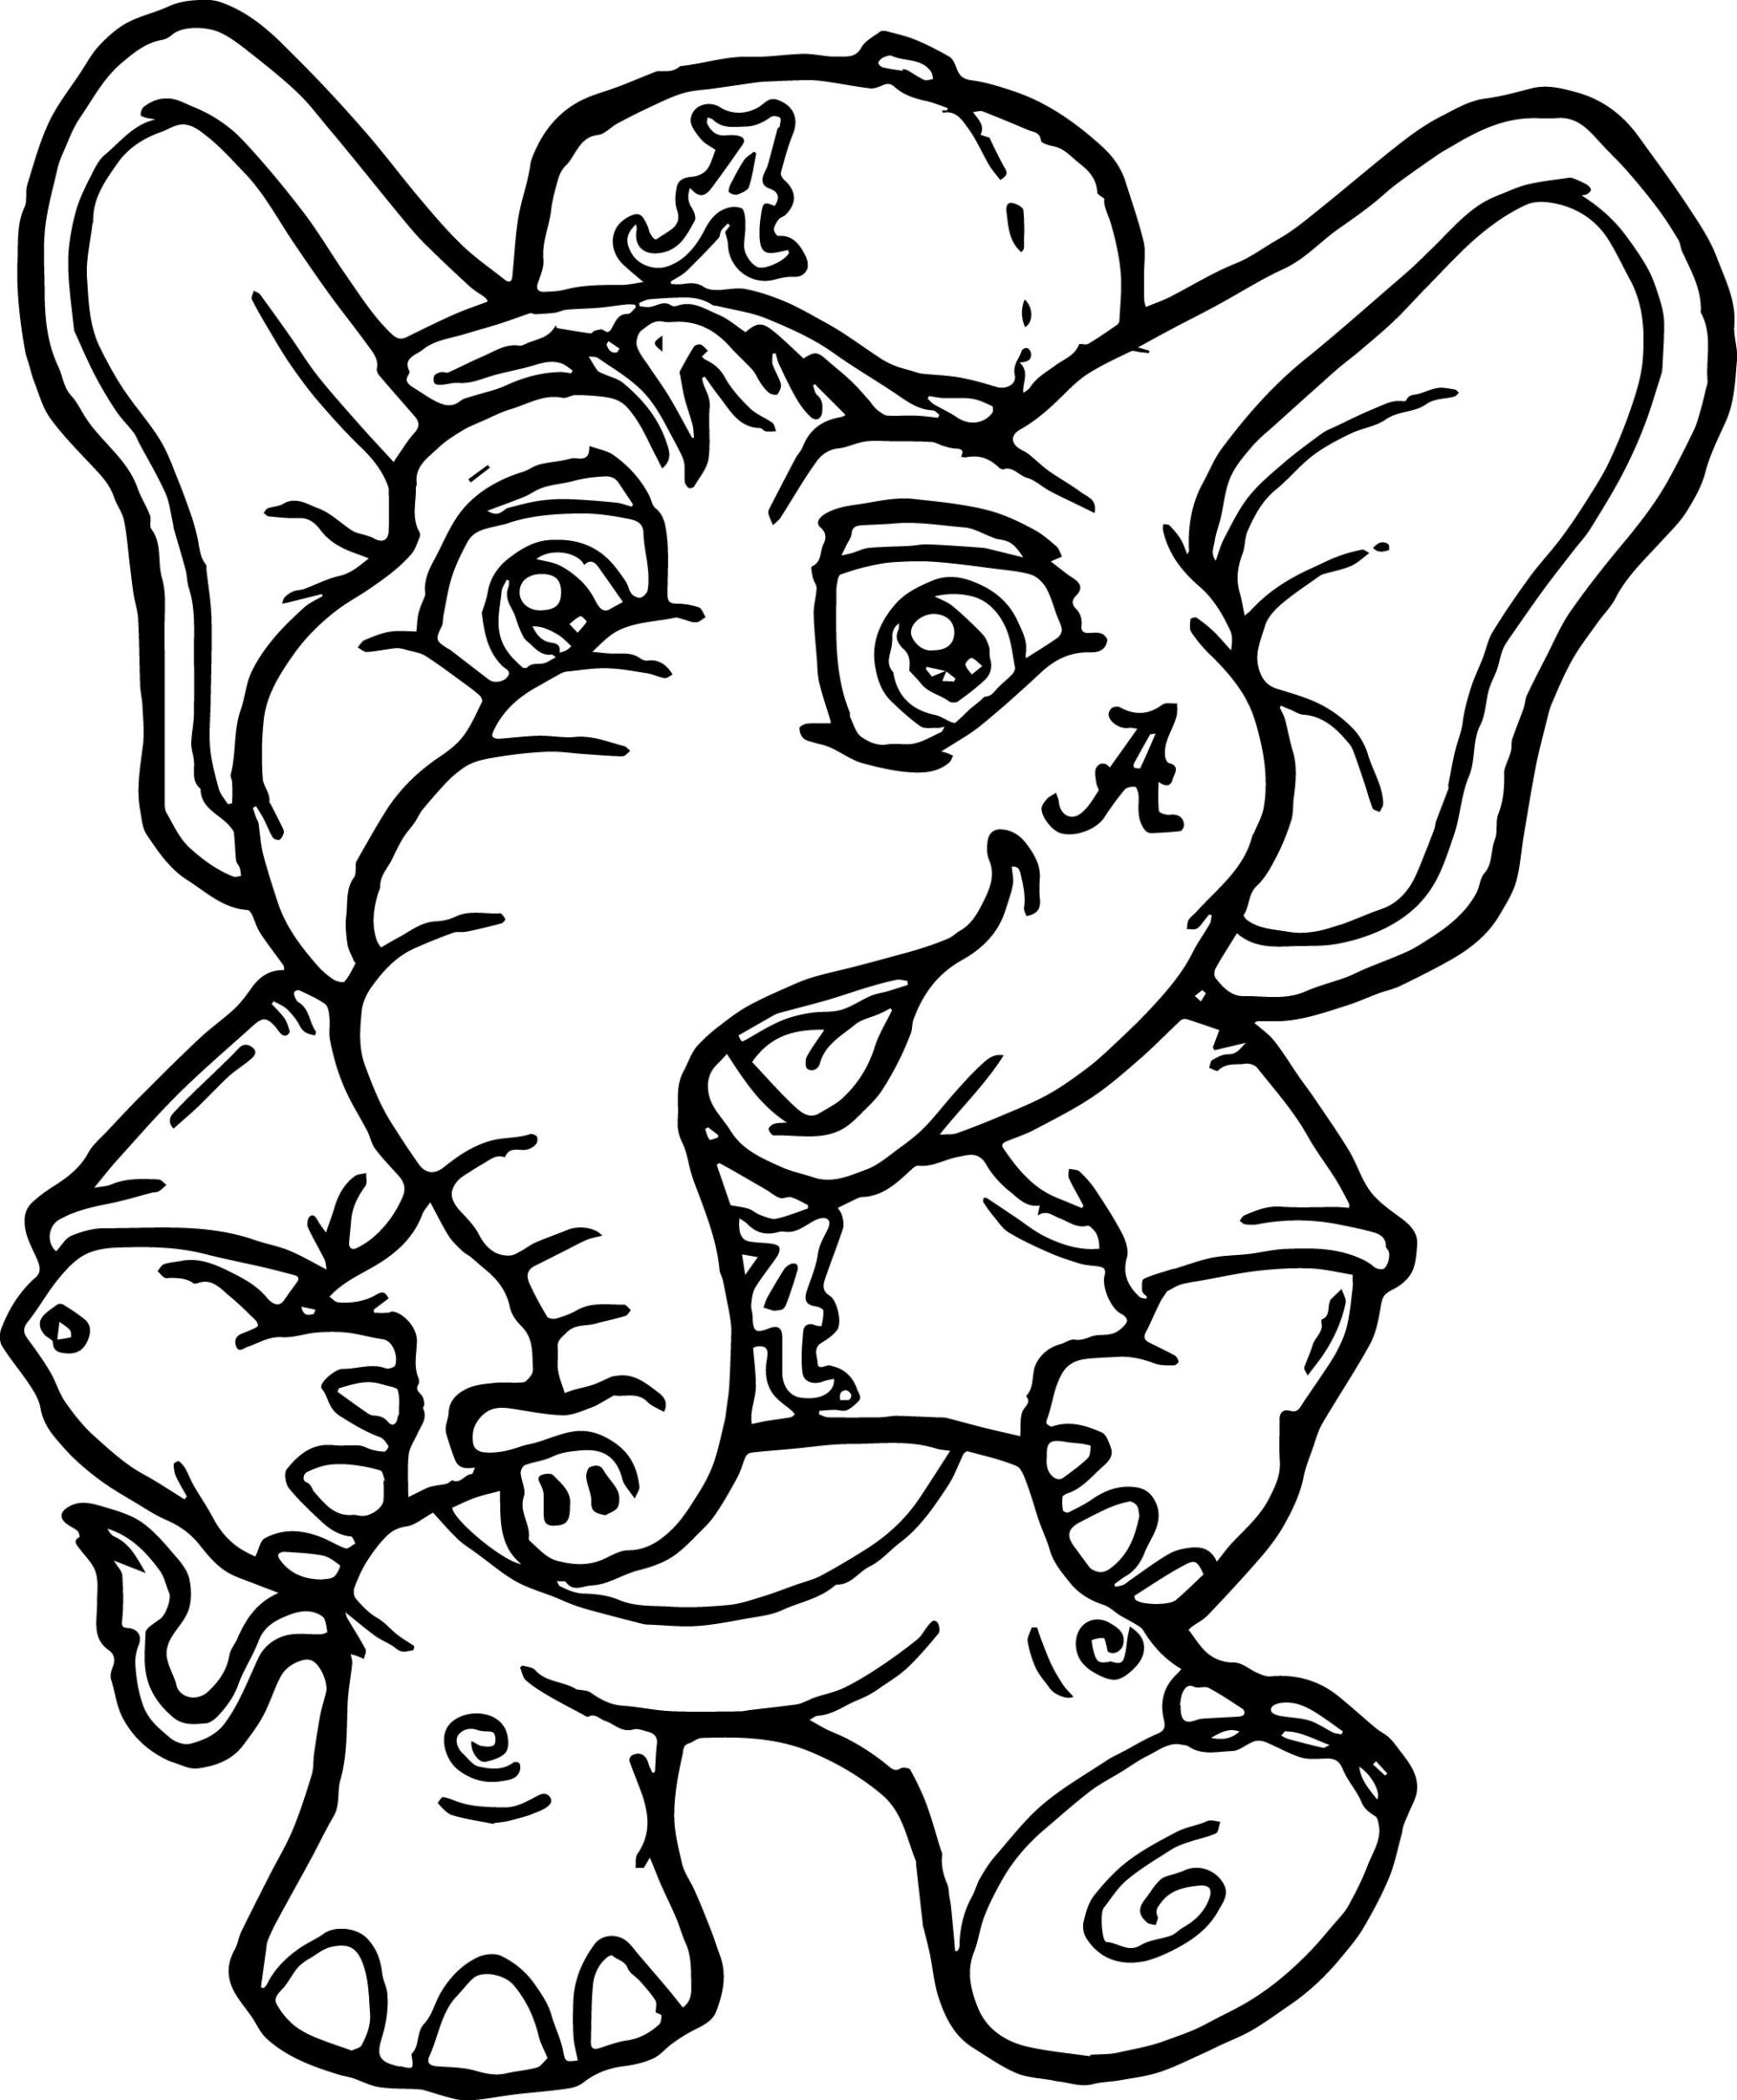 hight resolution of 2080x2515 alabama clipart university of alabama a text coloring page color